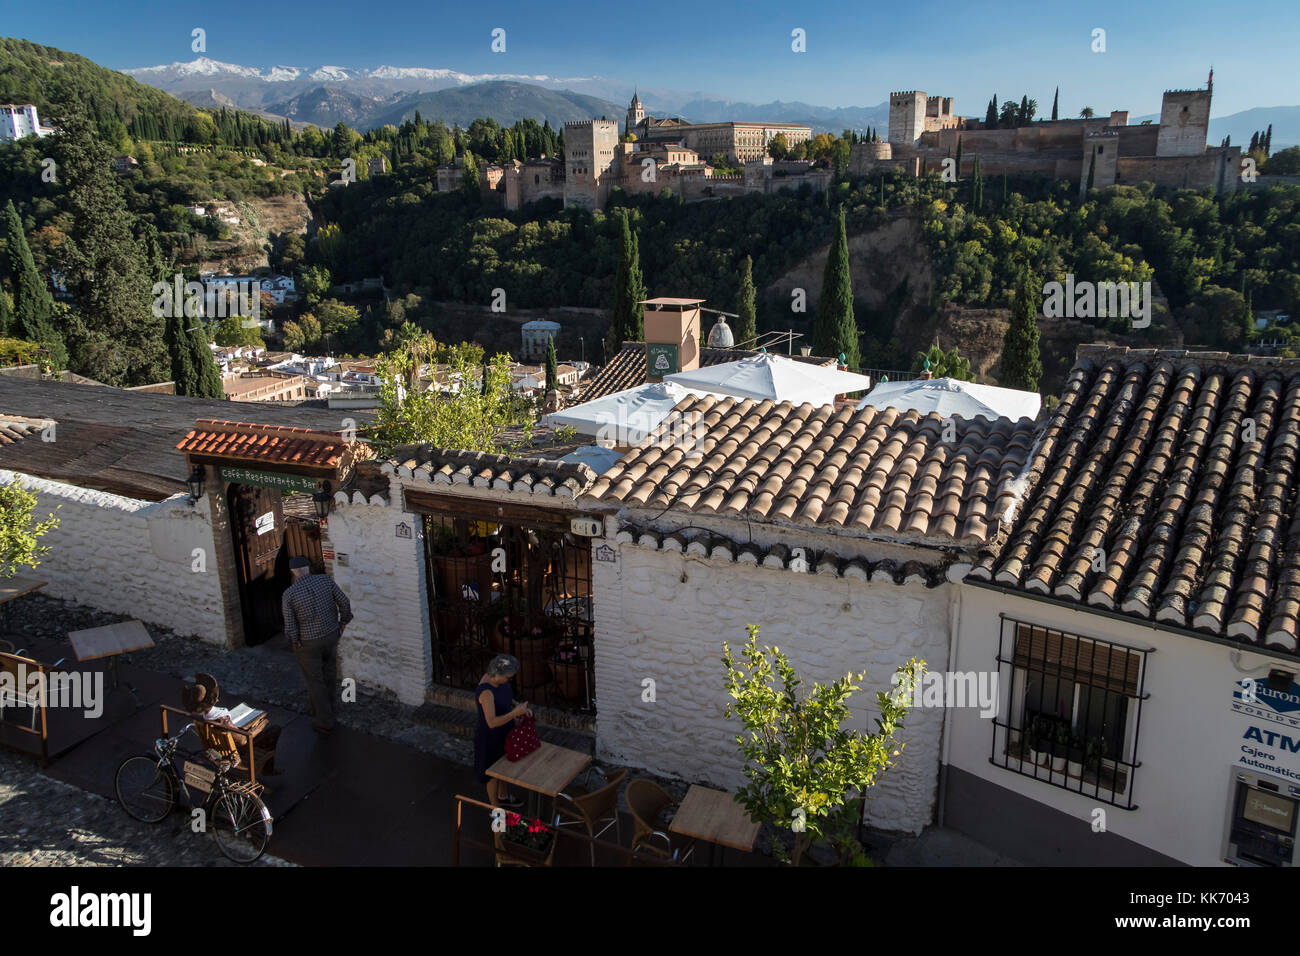 Granada, Spain. October, 2017. The Alhambra seen from the inside - Stock Image